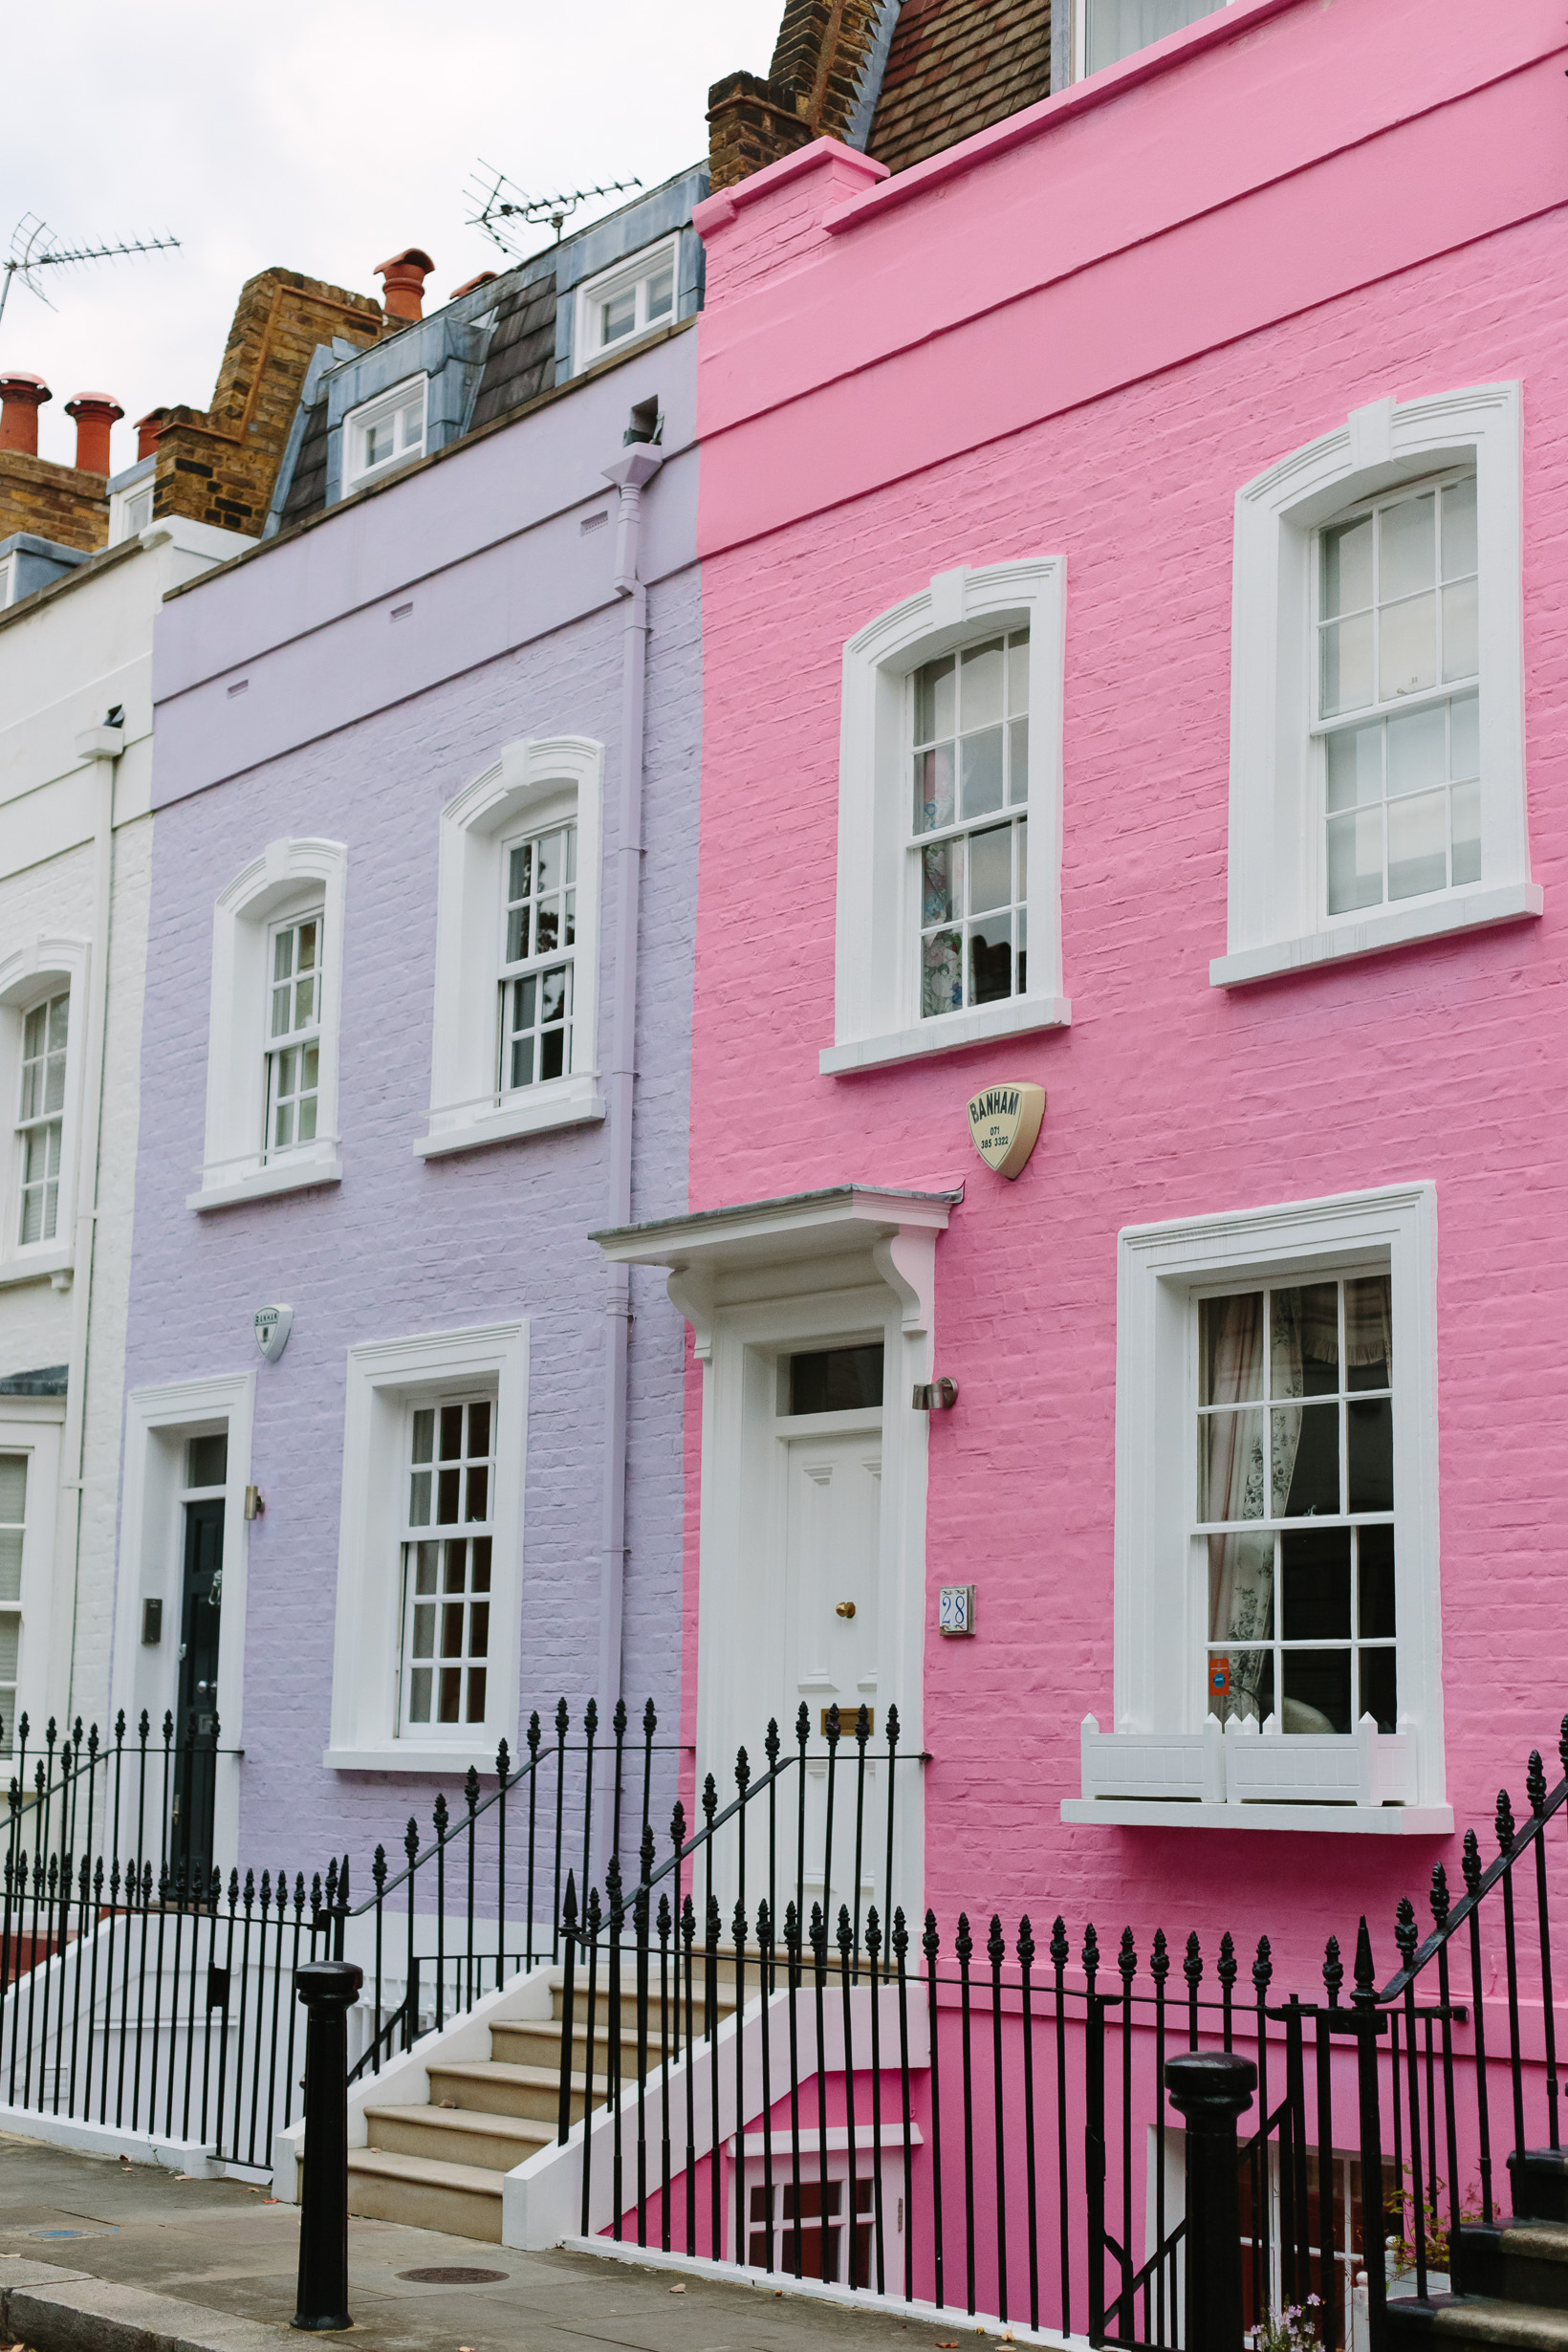 colorful-houses-in-london-3900